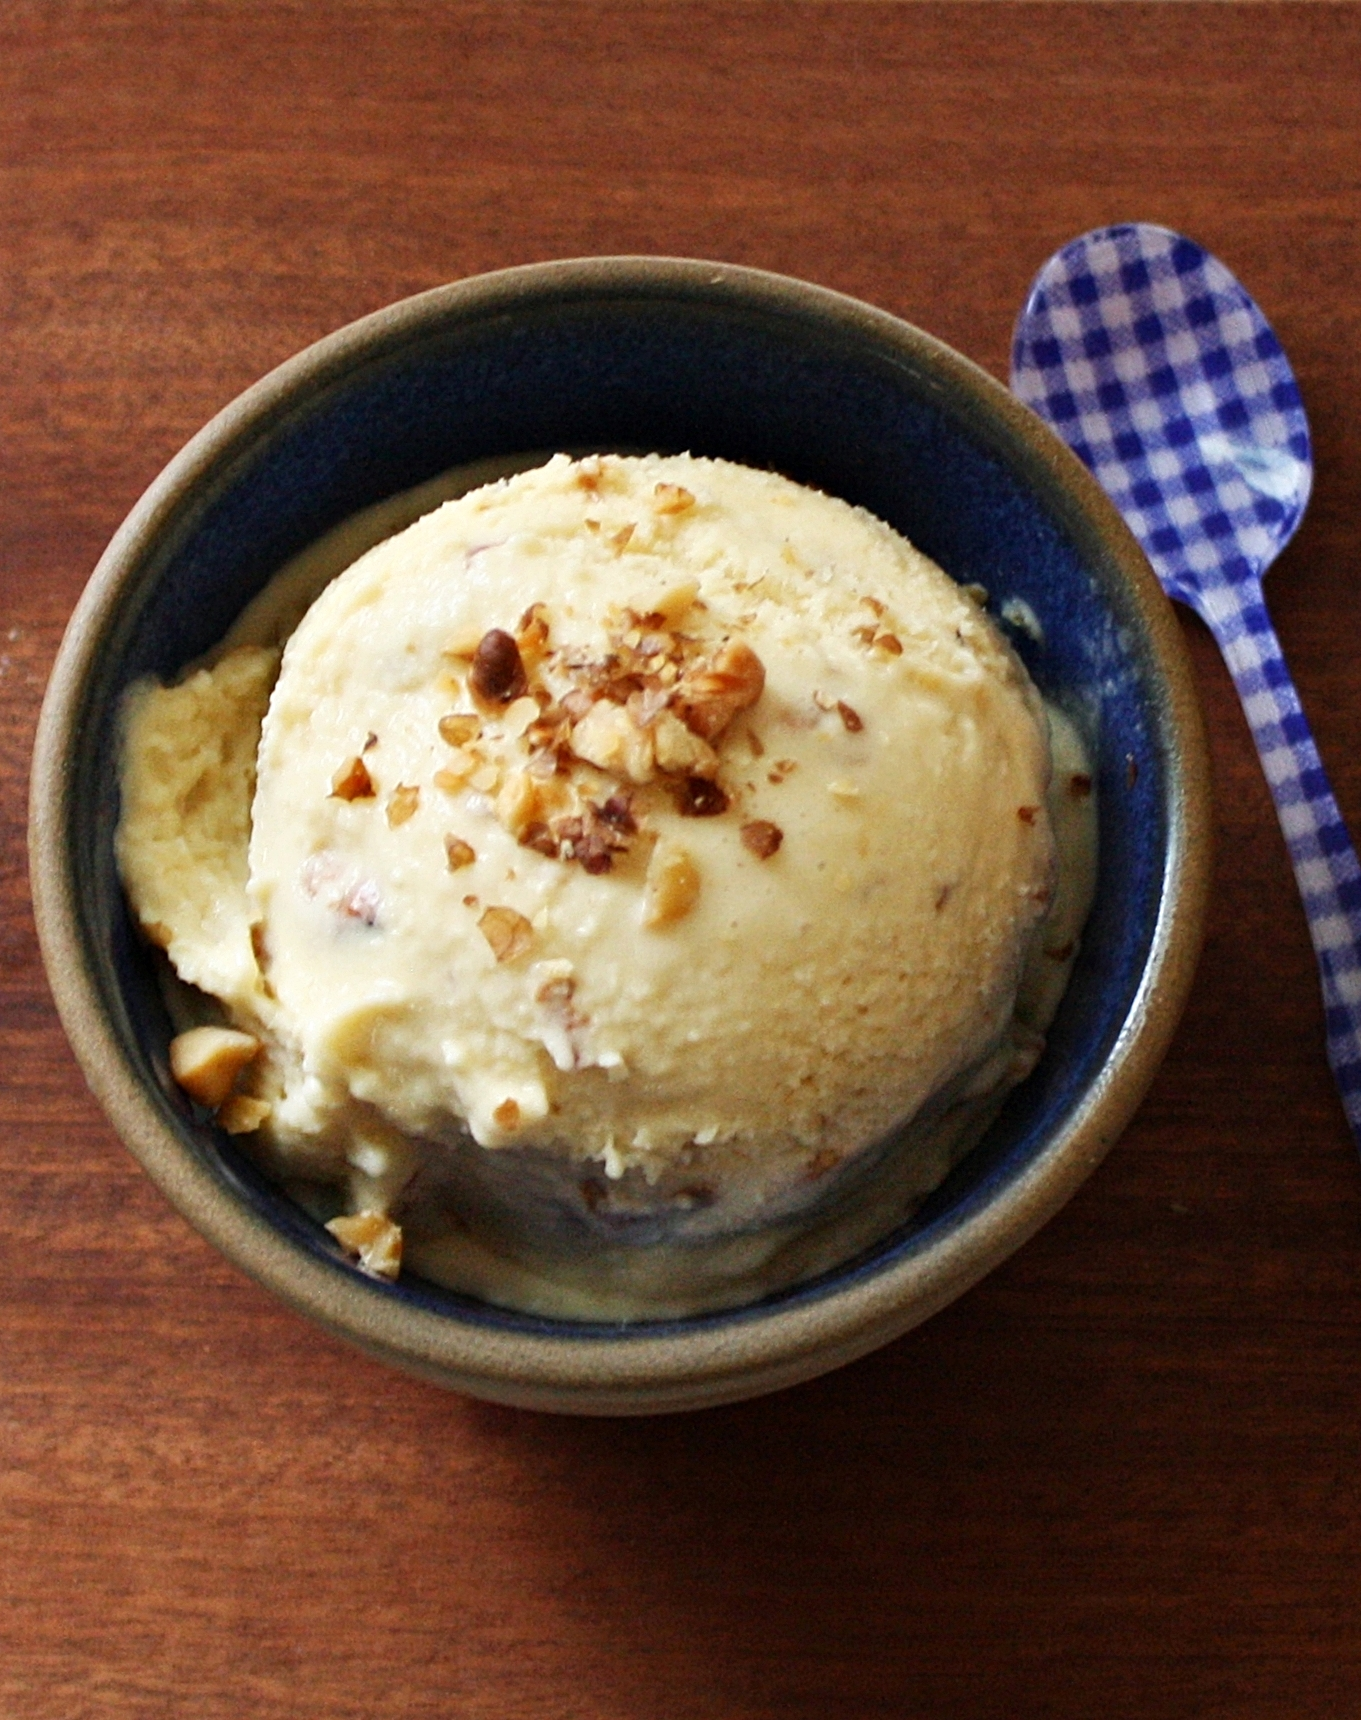 Homemade Maple Walnut Ice Cream Recipe - Yankee Magazine